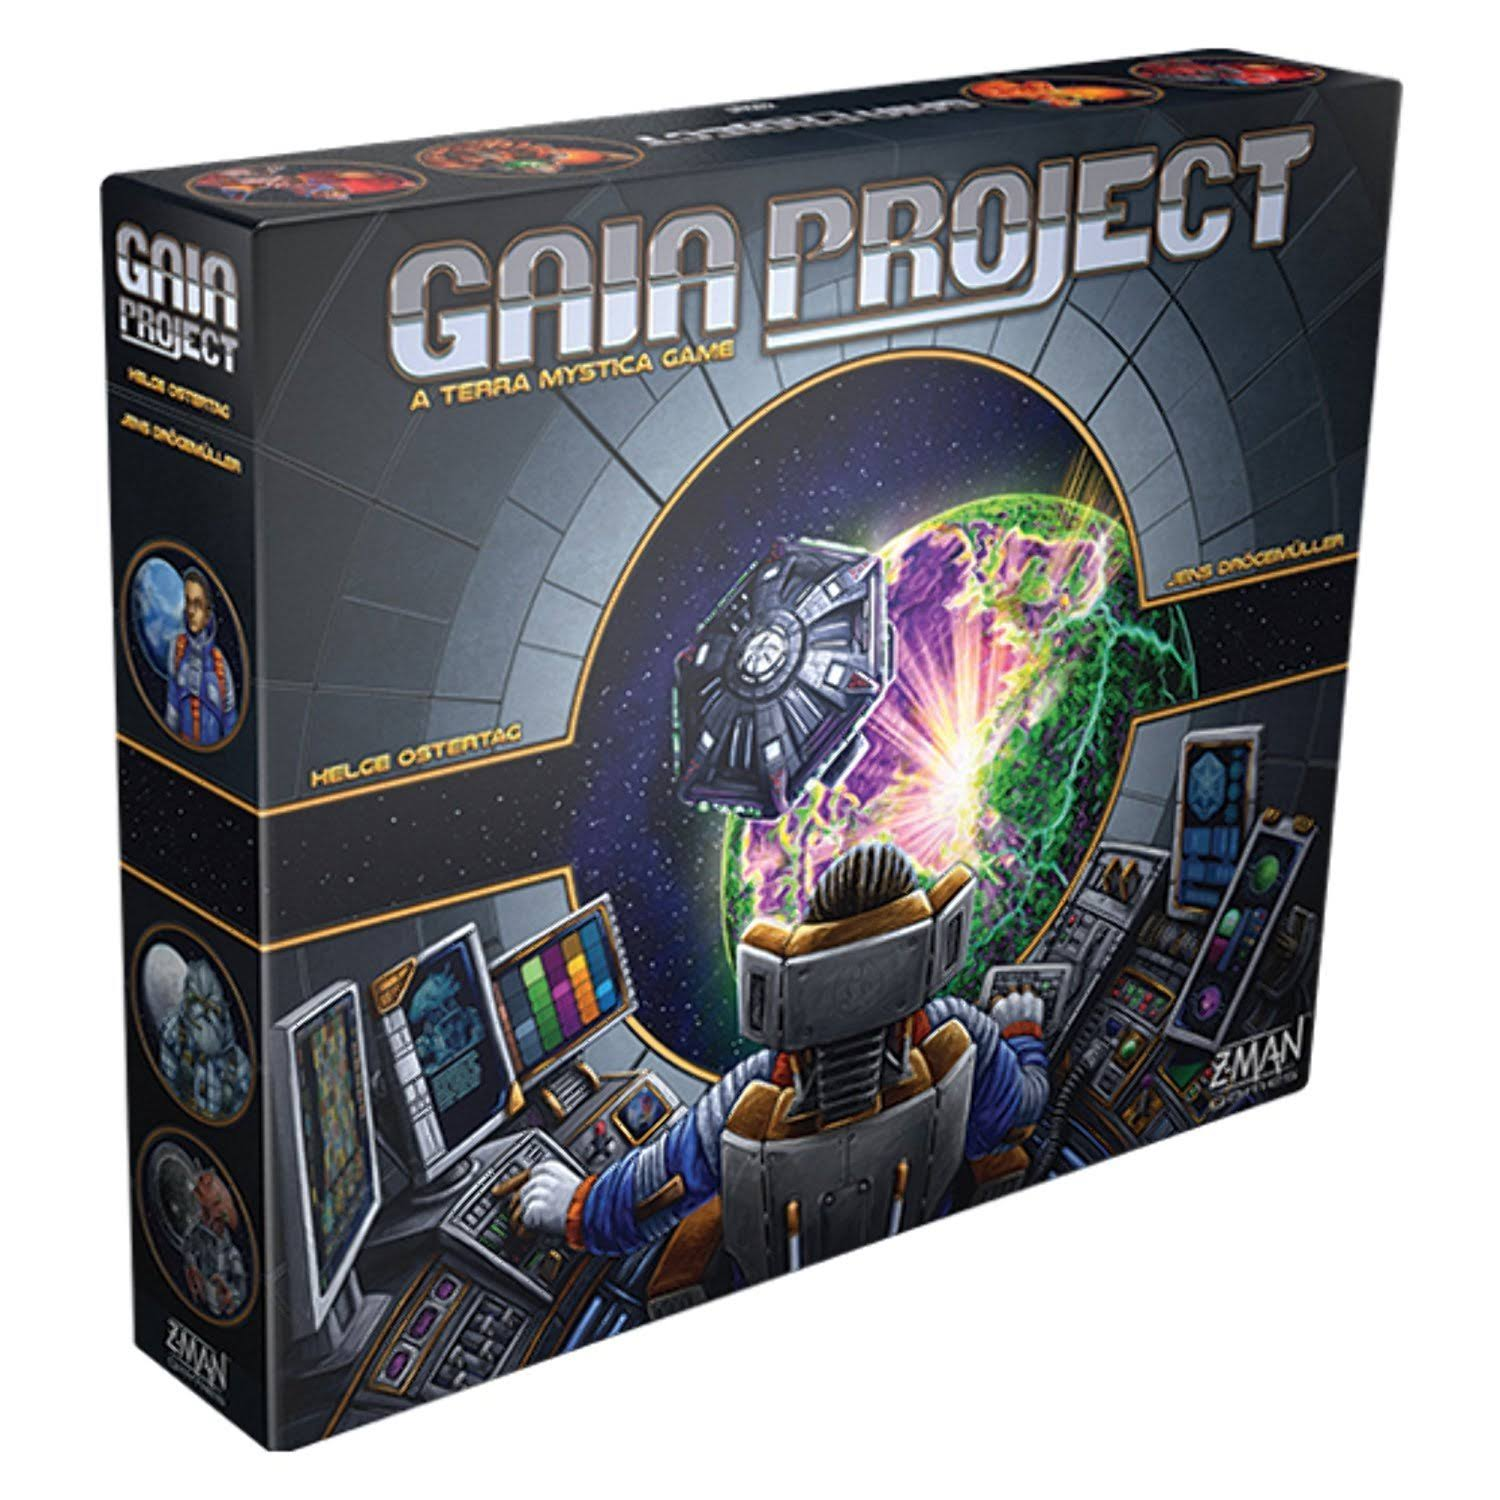 Z-Man Gaia Project a Terra Mystica Game